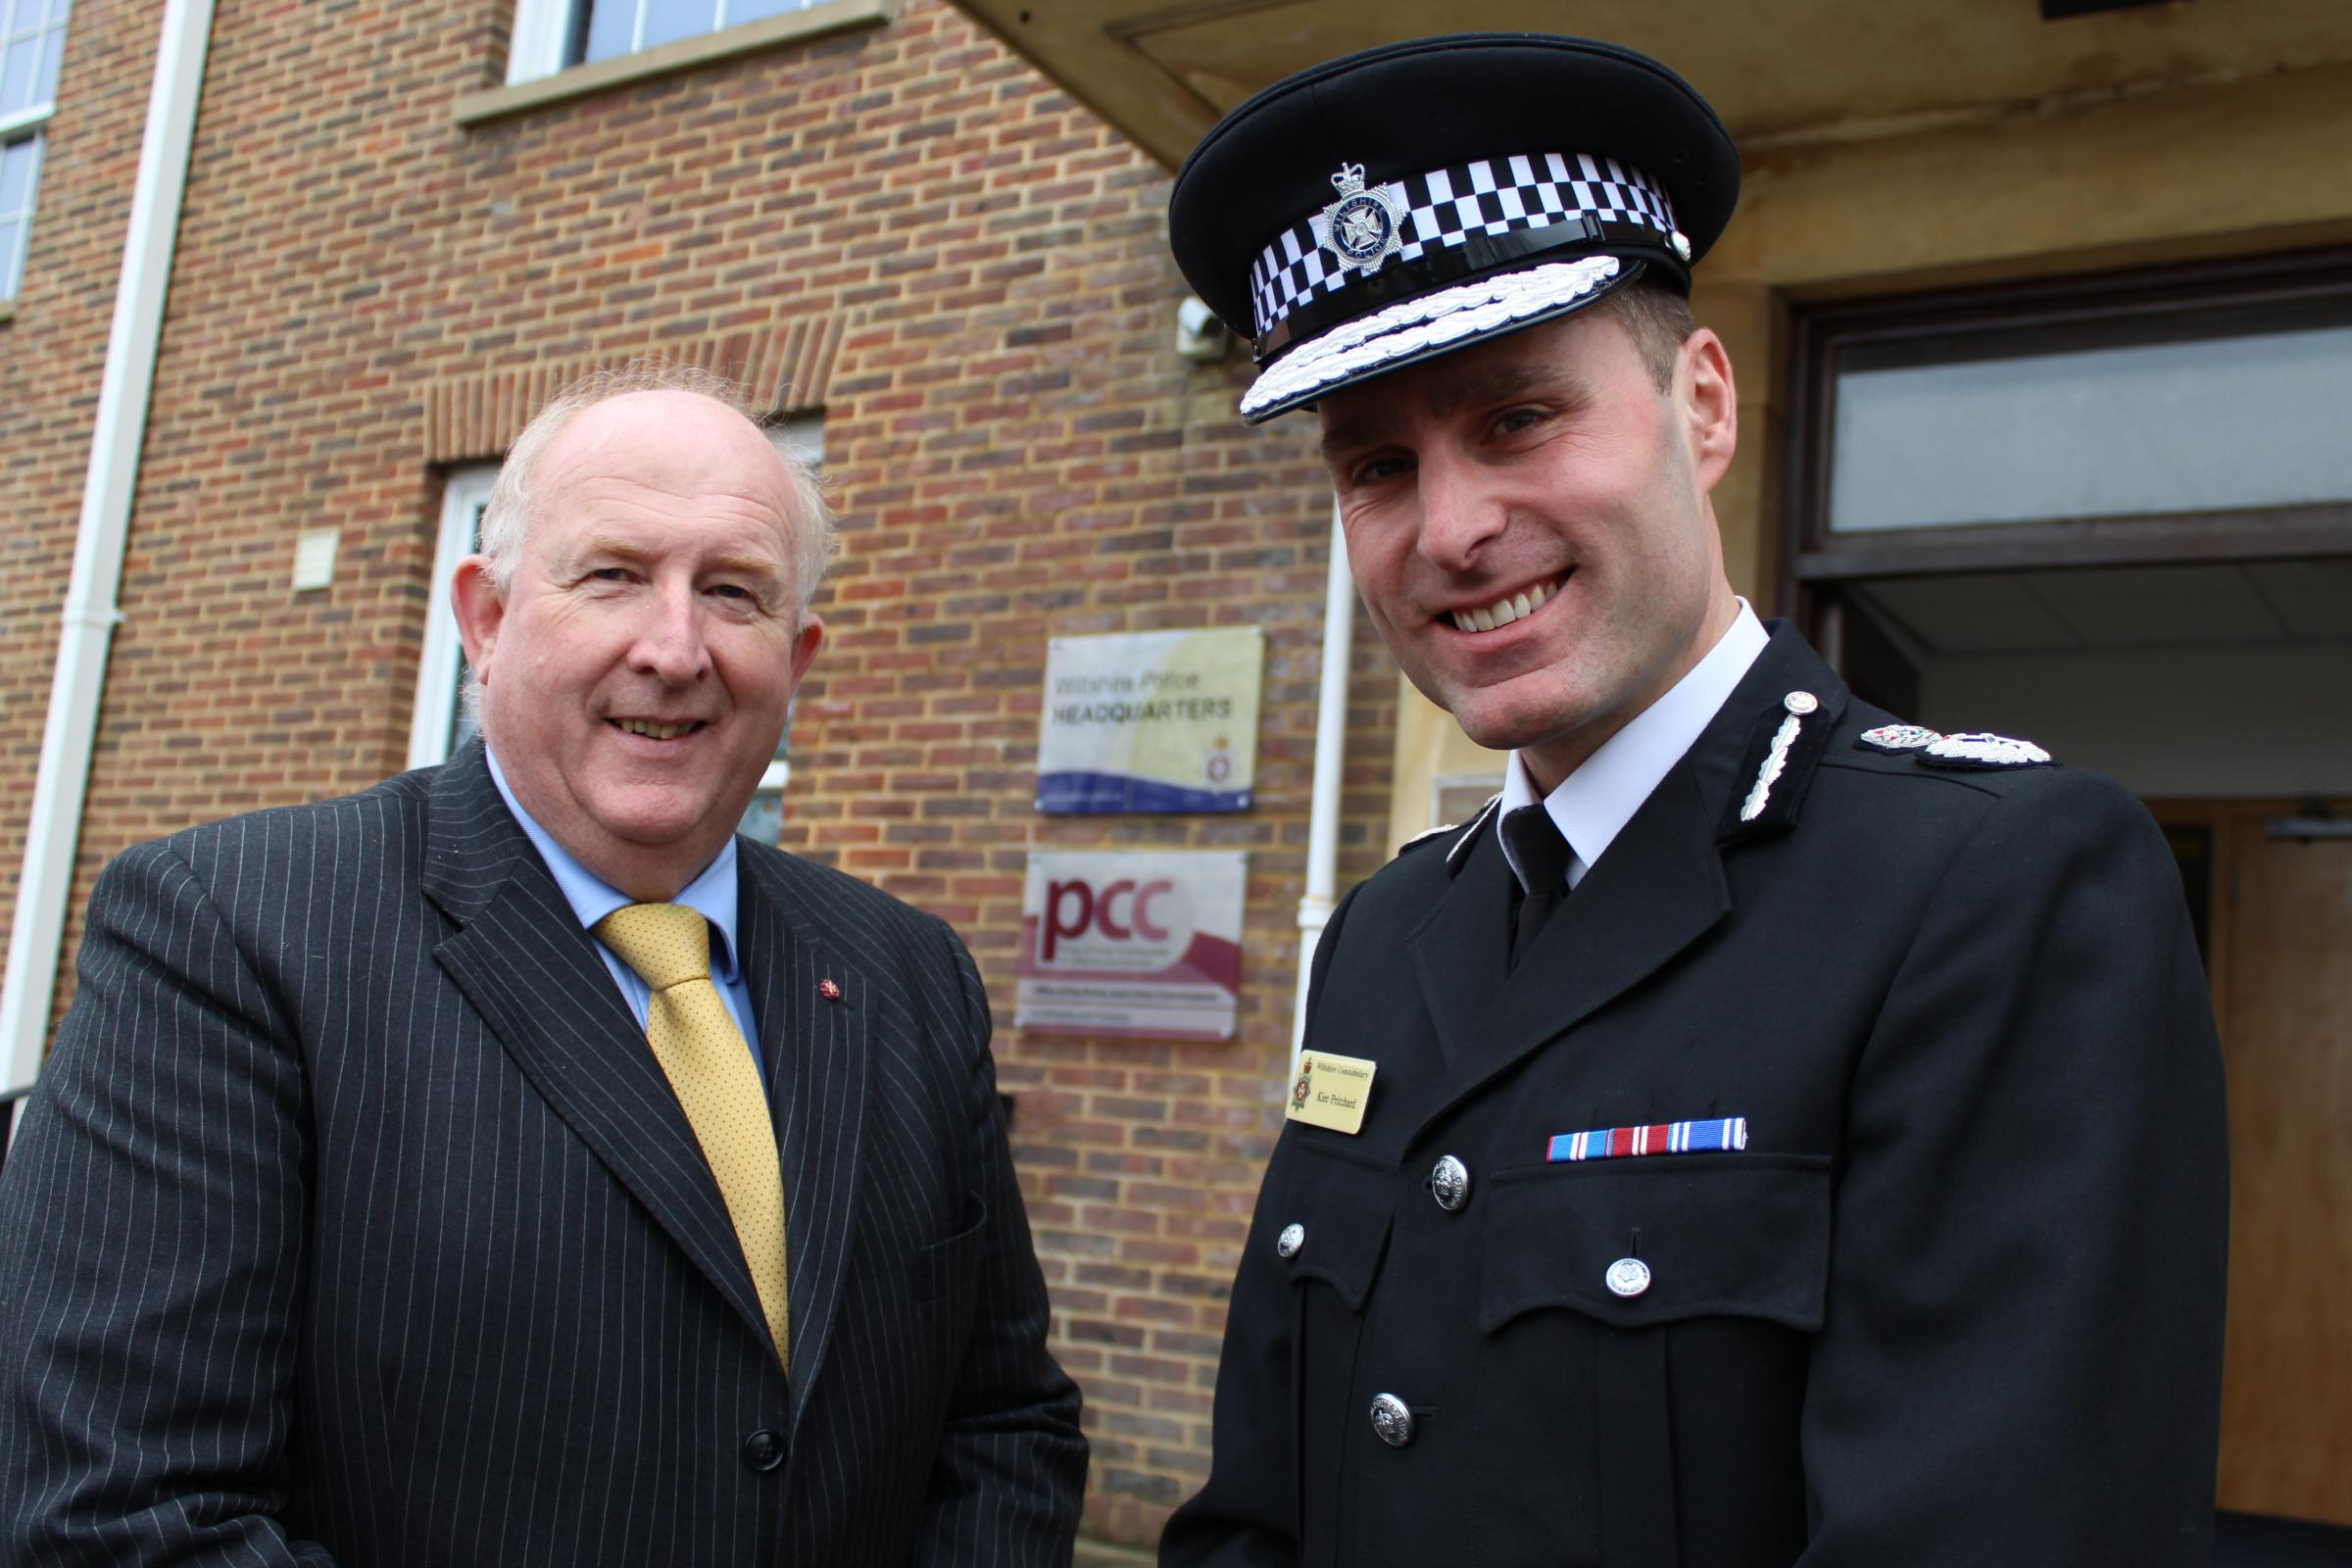 Wiltshire Crime Commissioner Angus Macpherson with Chief Constable Kier Pritchard